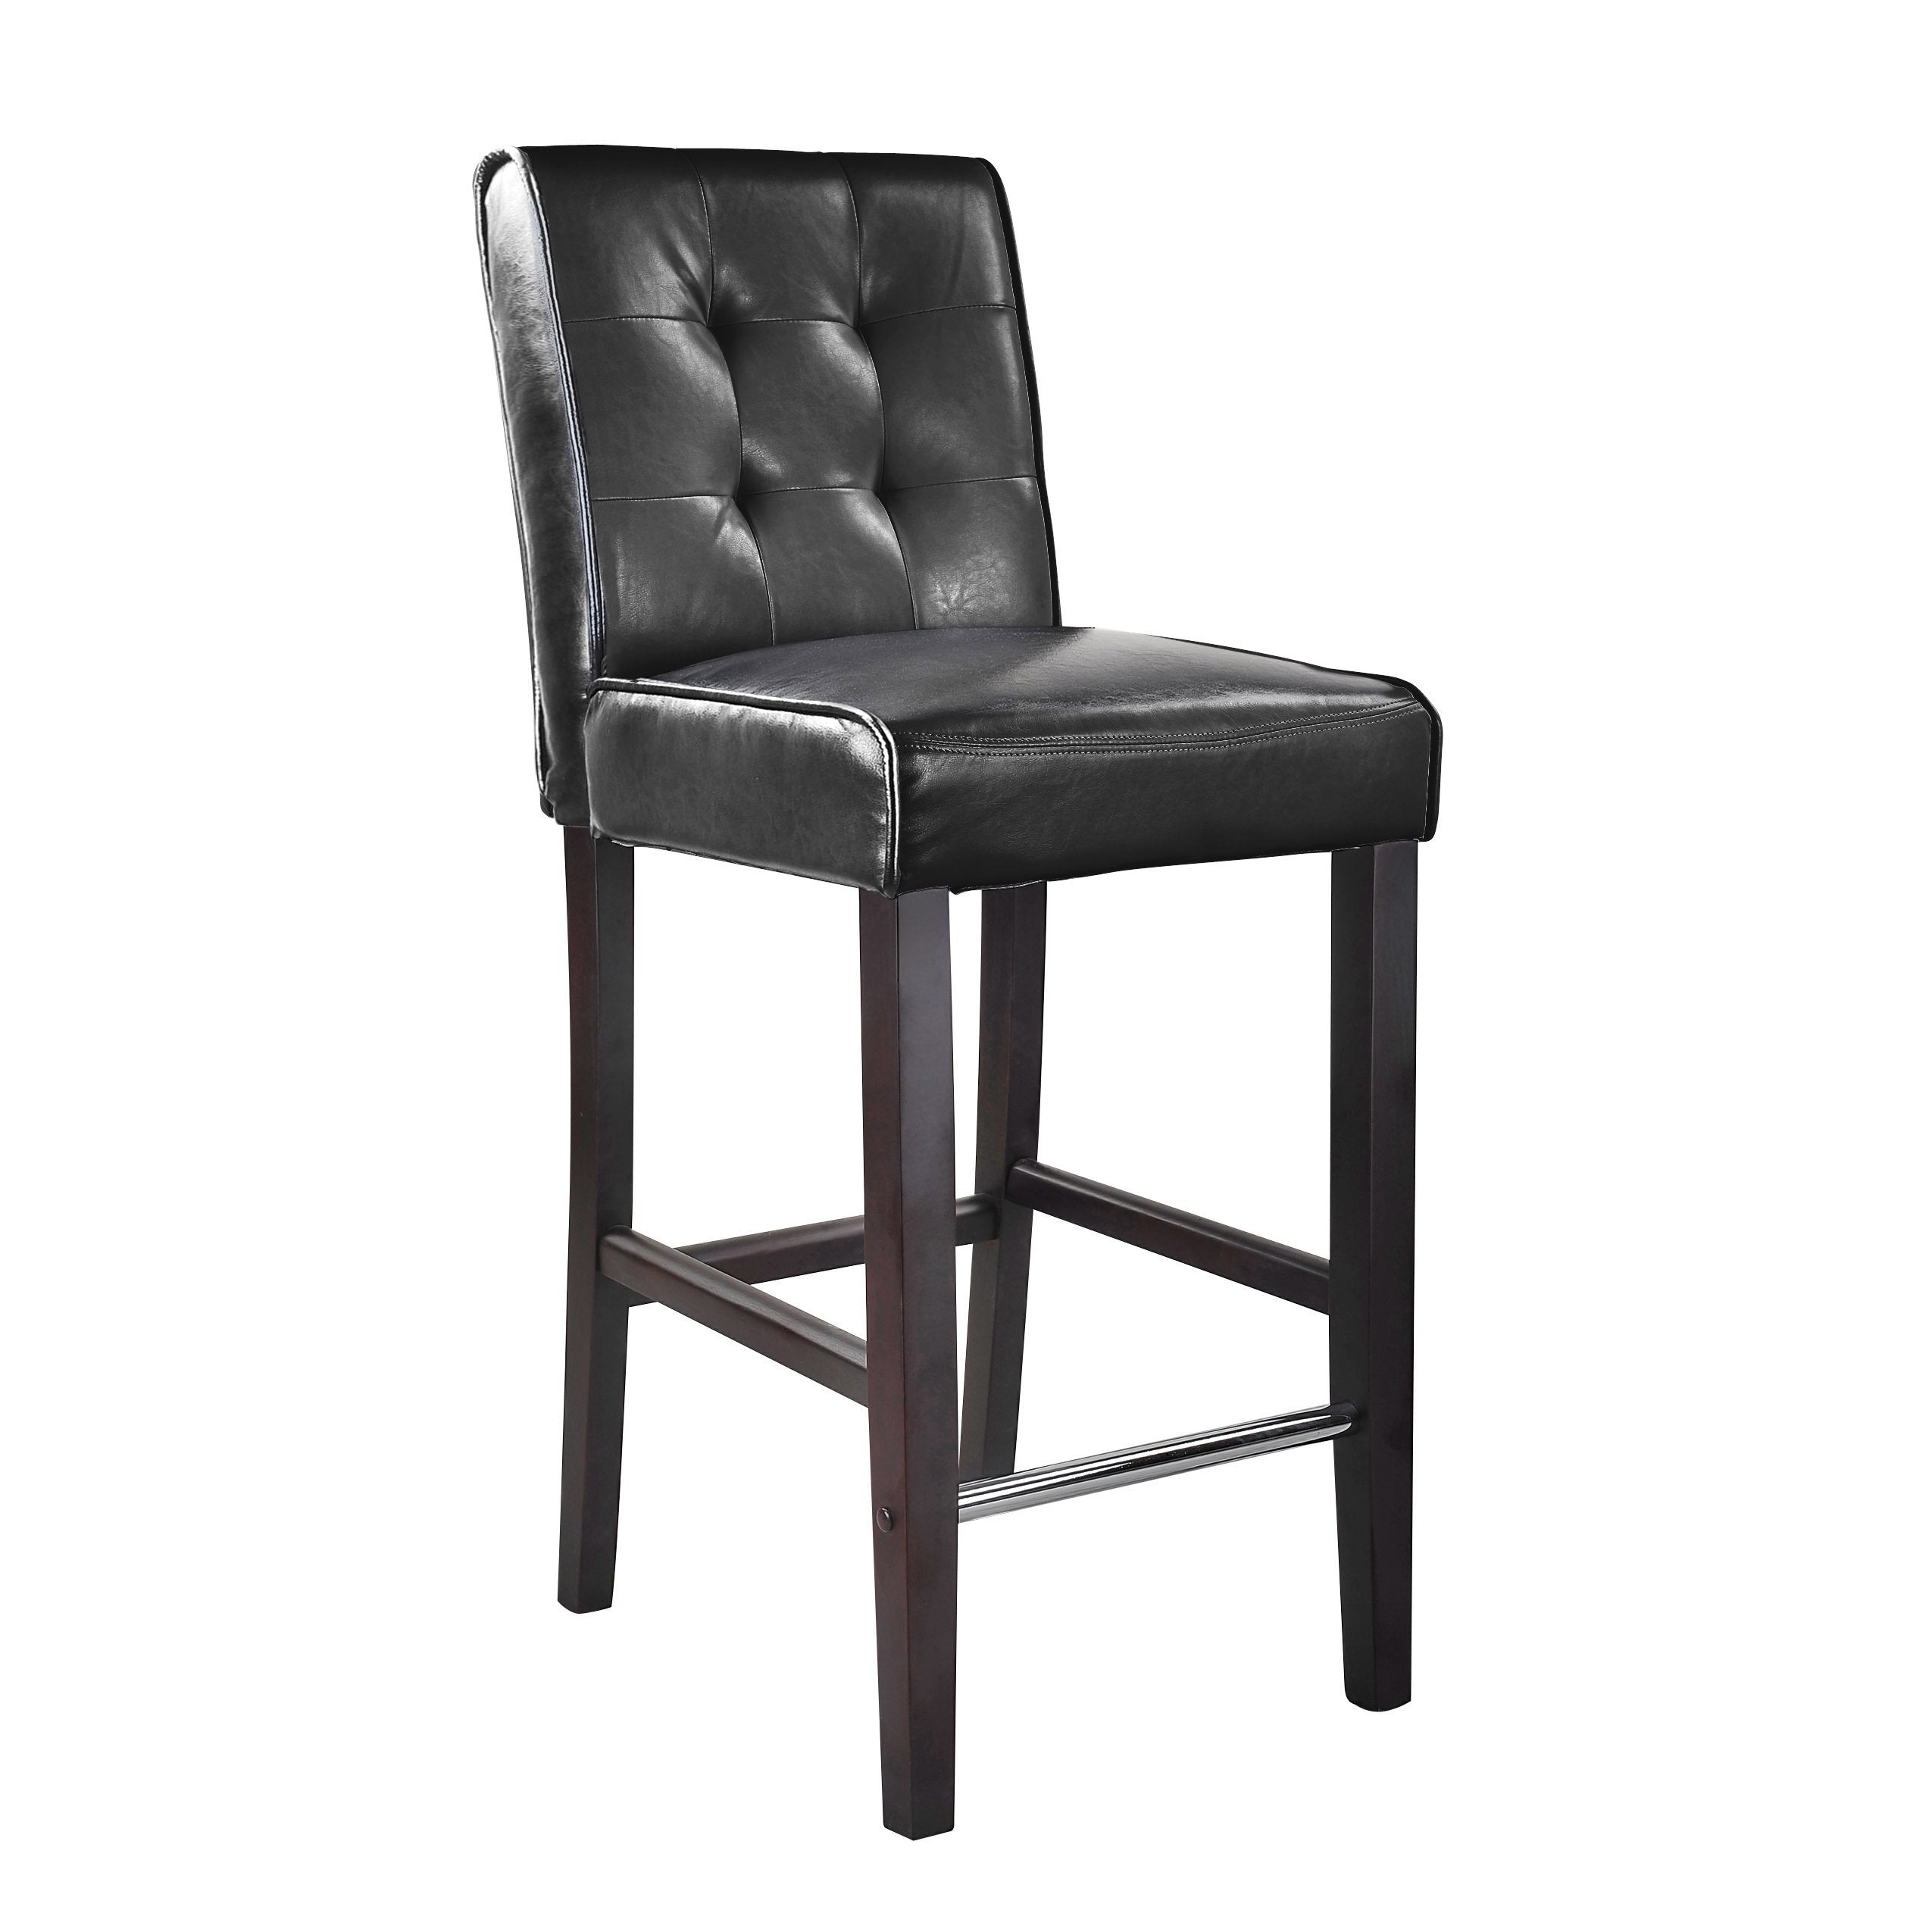 Picture of: Antonio Pu Leather Bar Height Bar Stool With Footrest Corliving Furniture